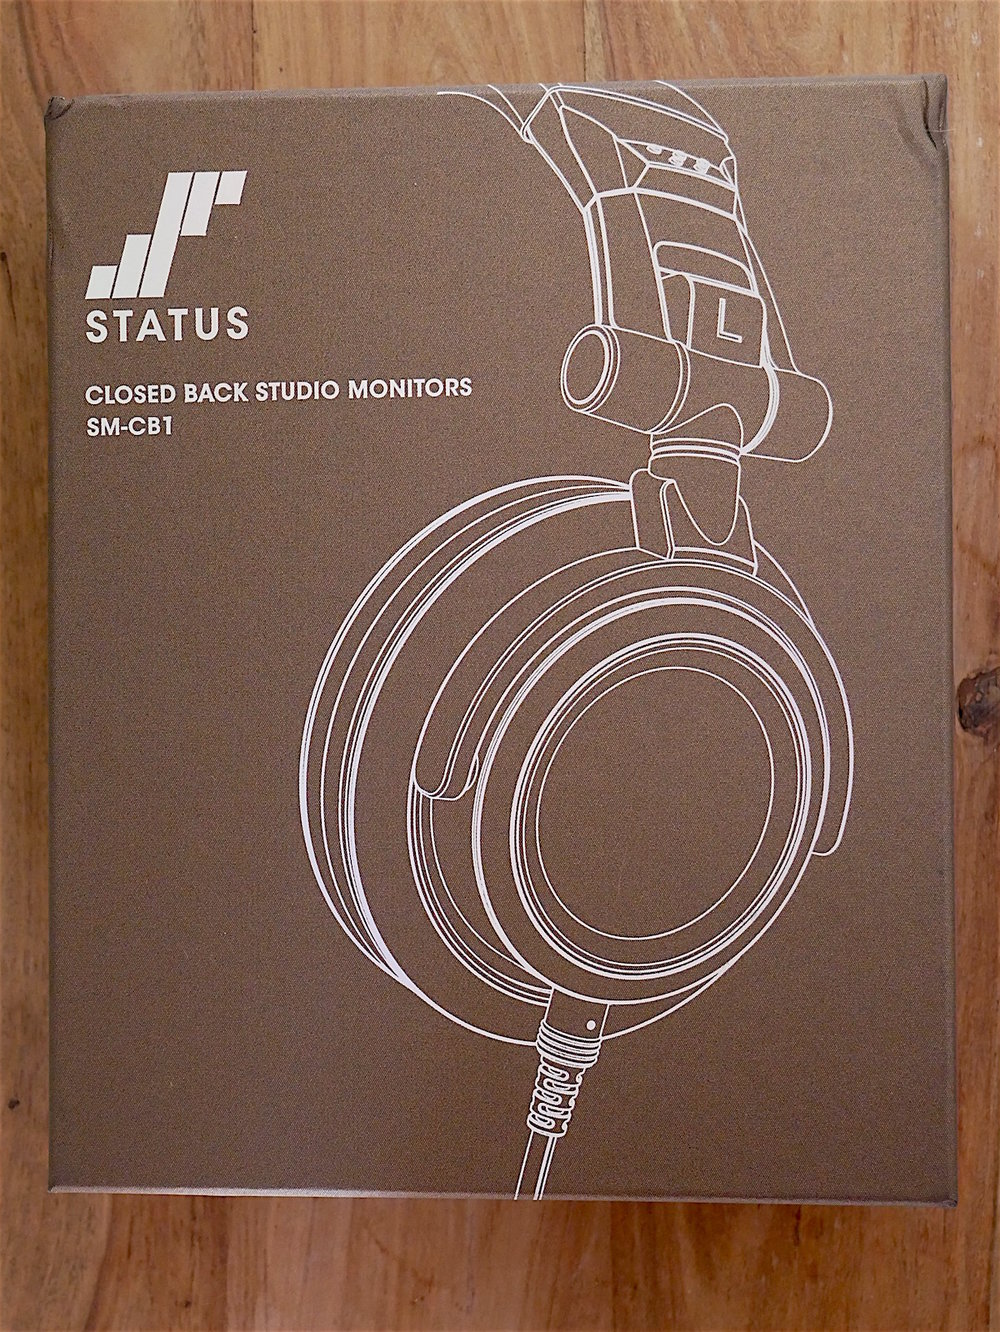 Box and Packaging for the Status Audio CB-1 Headphone